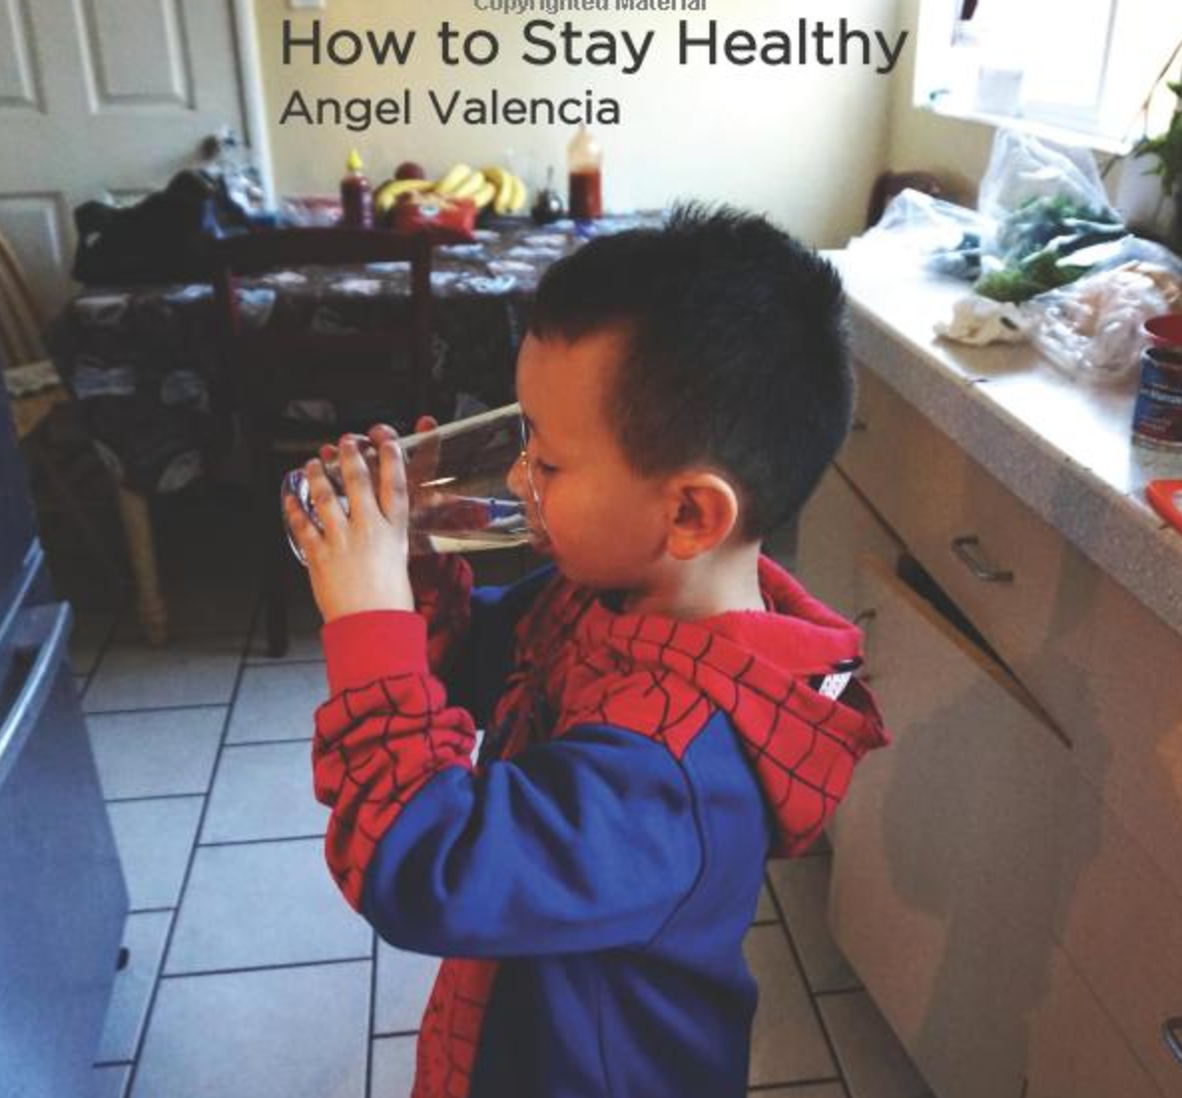 How to Stay Healthy   Read this book to learn how to keep yourself healthy.   Buy this book.